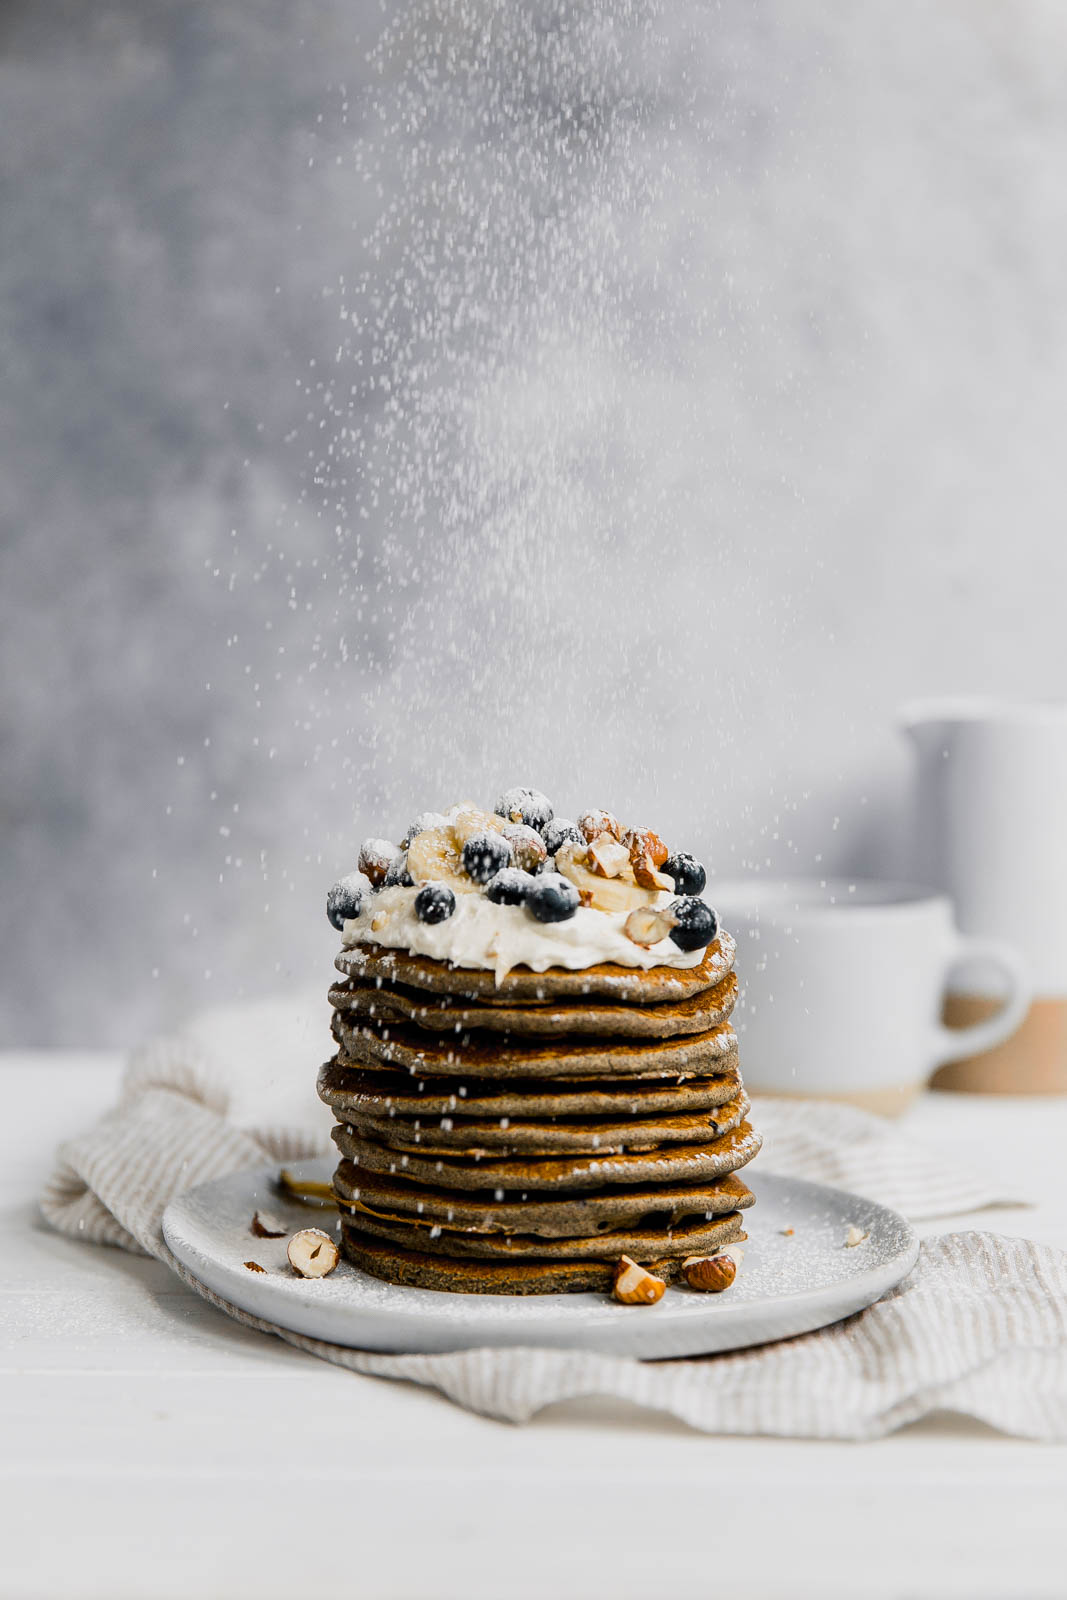 dusting powdered sugar onto gluten free buckwheat pancakes